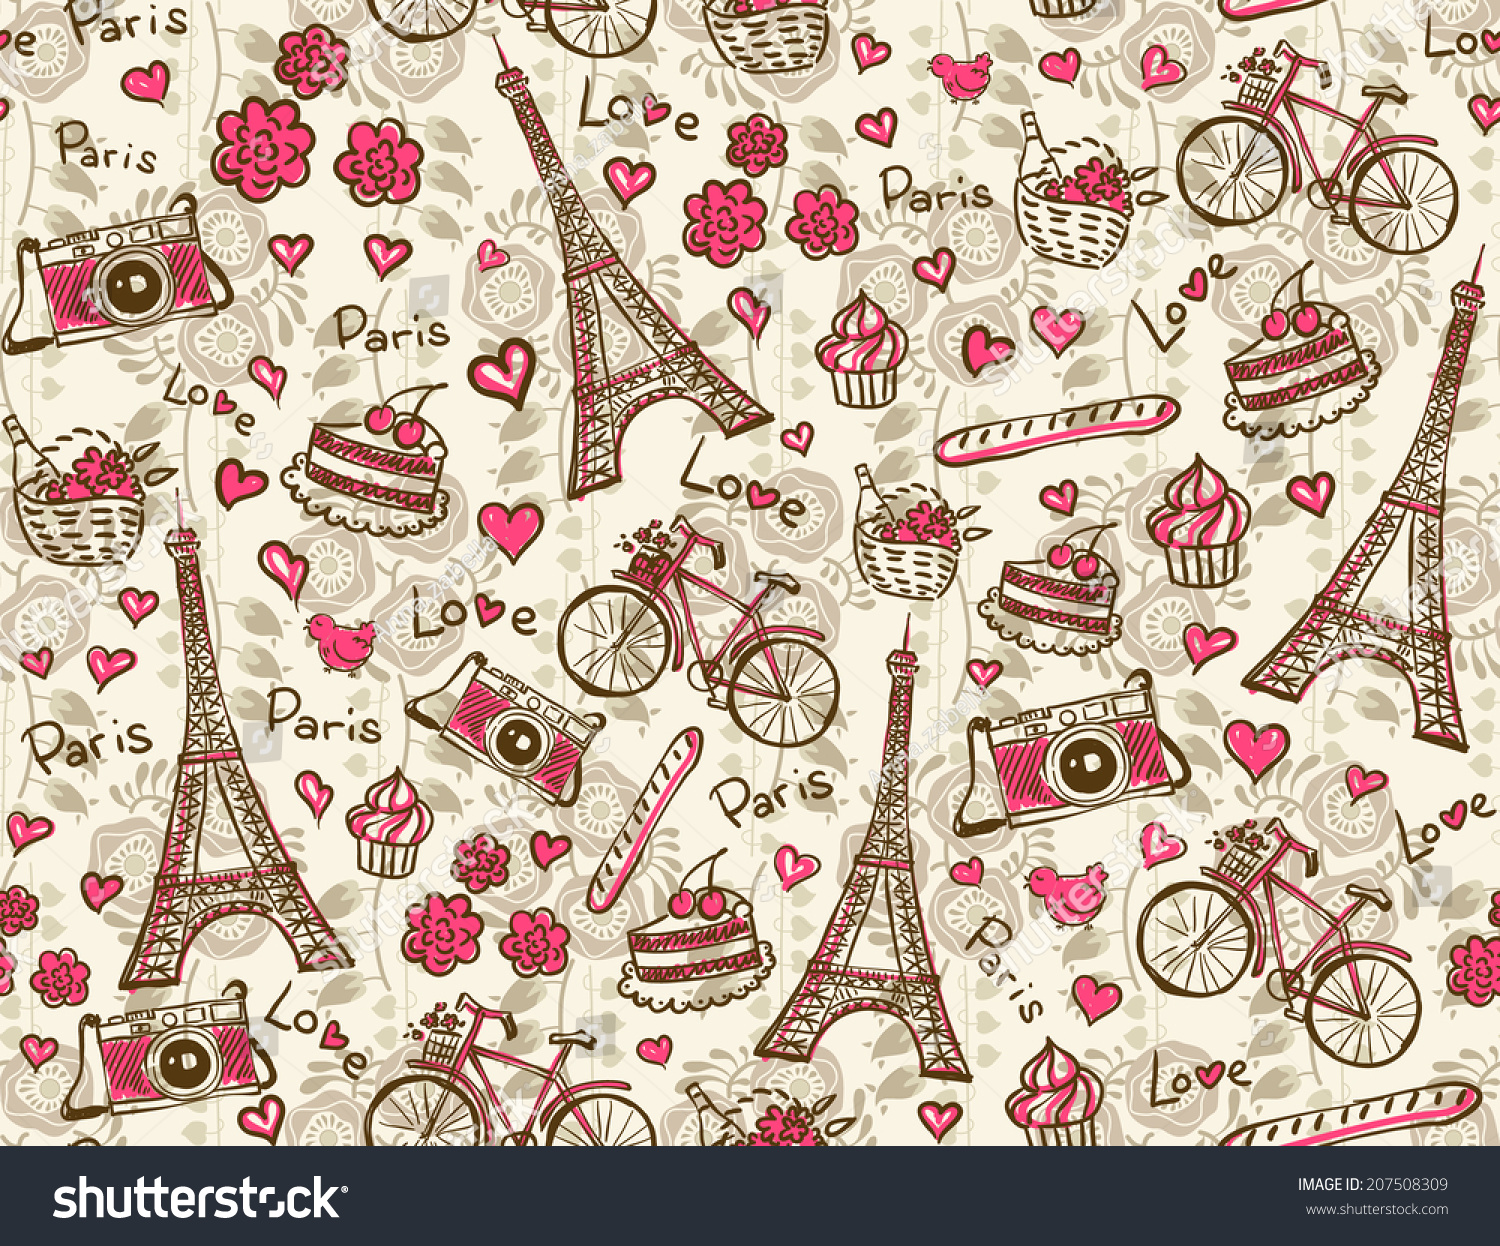 Paris Vintage Background Seamless Vector Pattern Stock